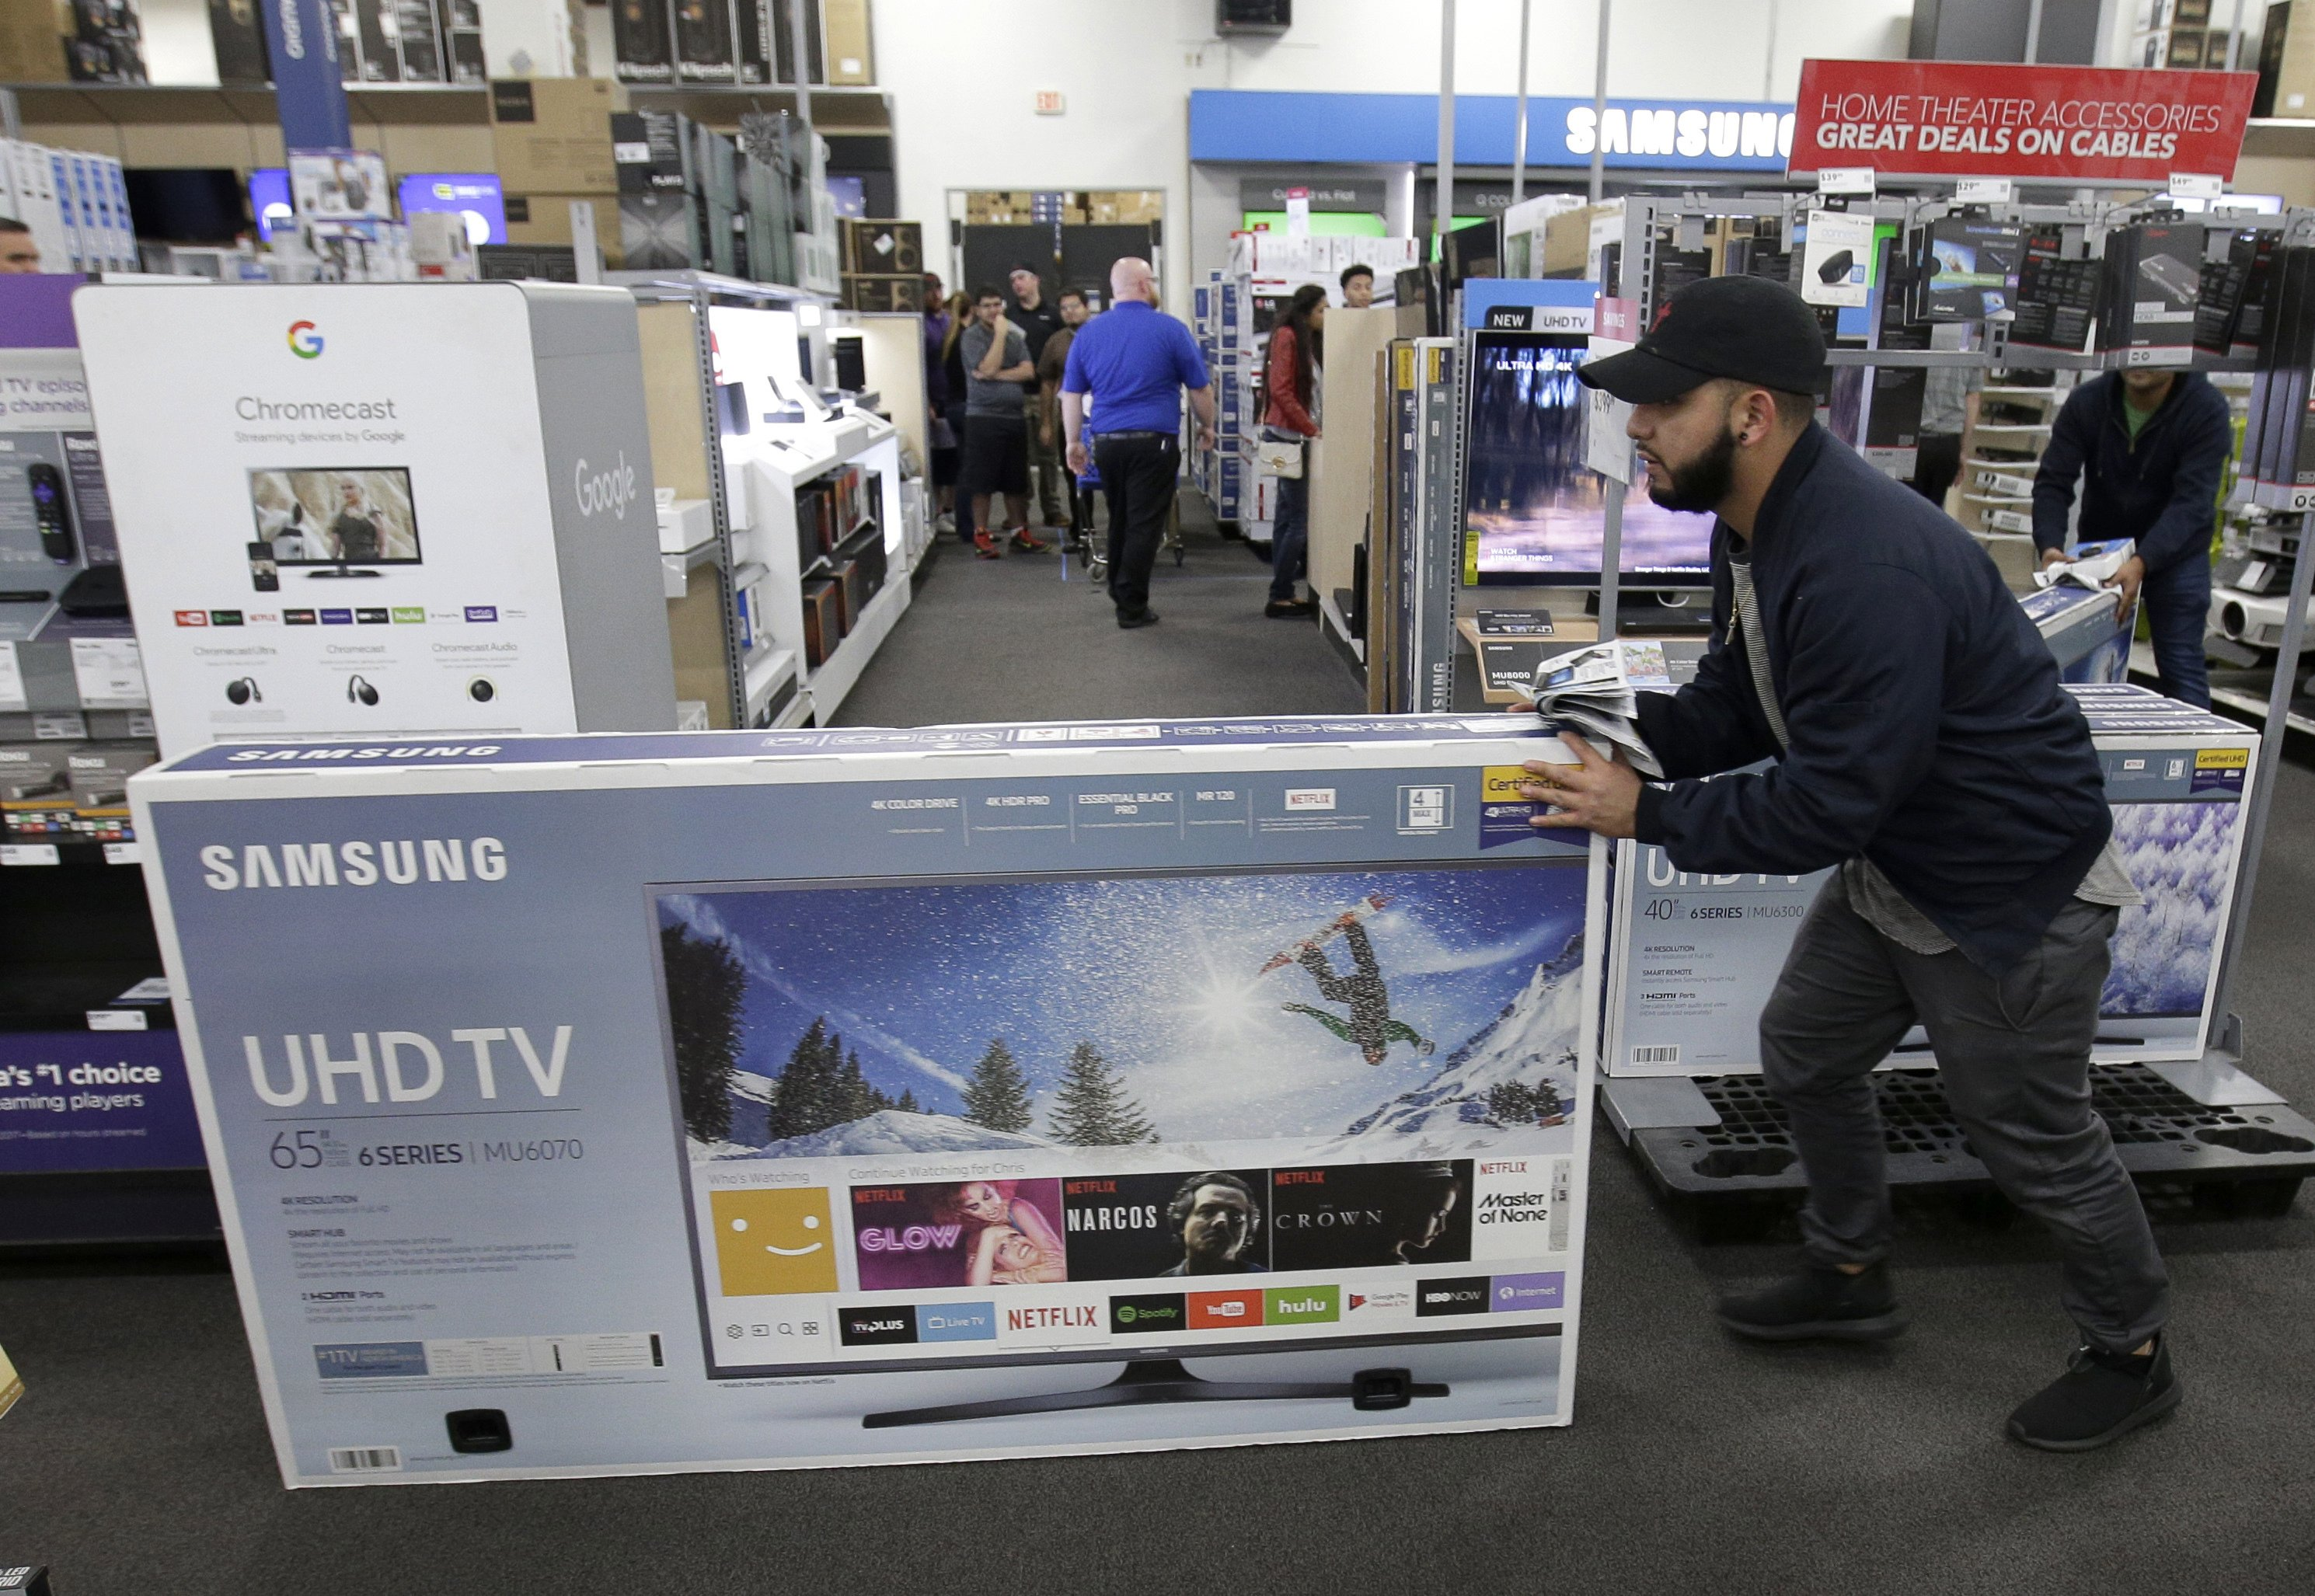 Shoppers spending more may make a merry season for retailers